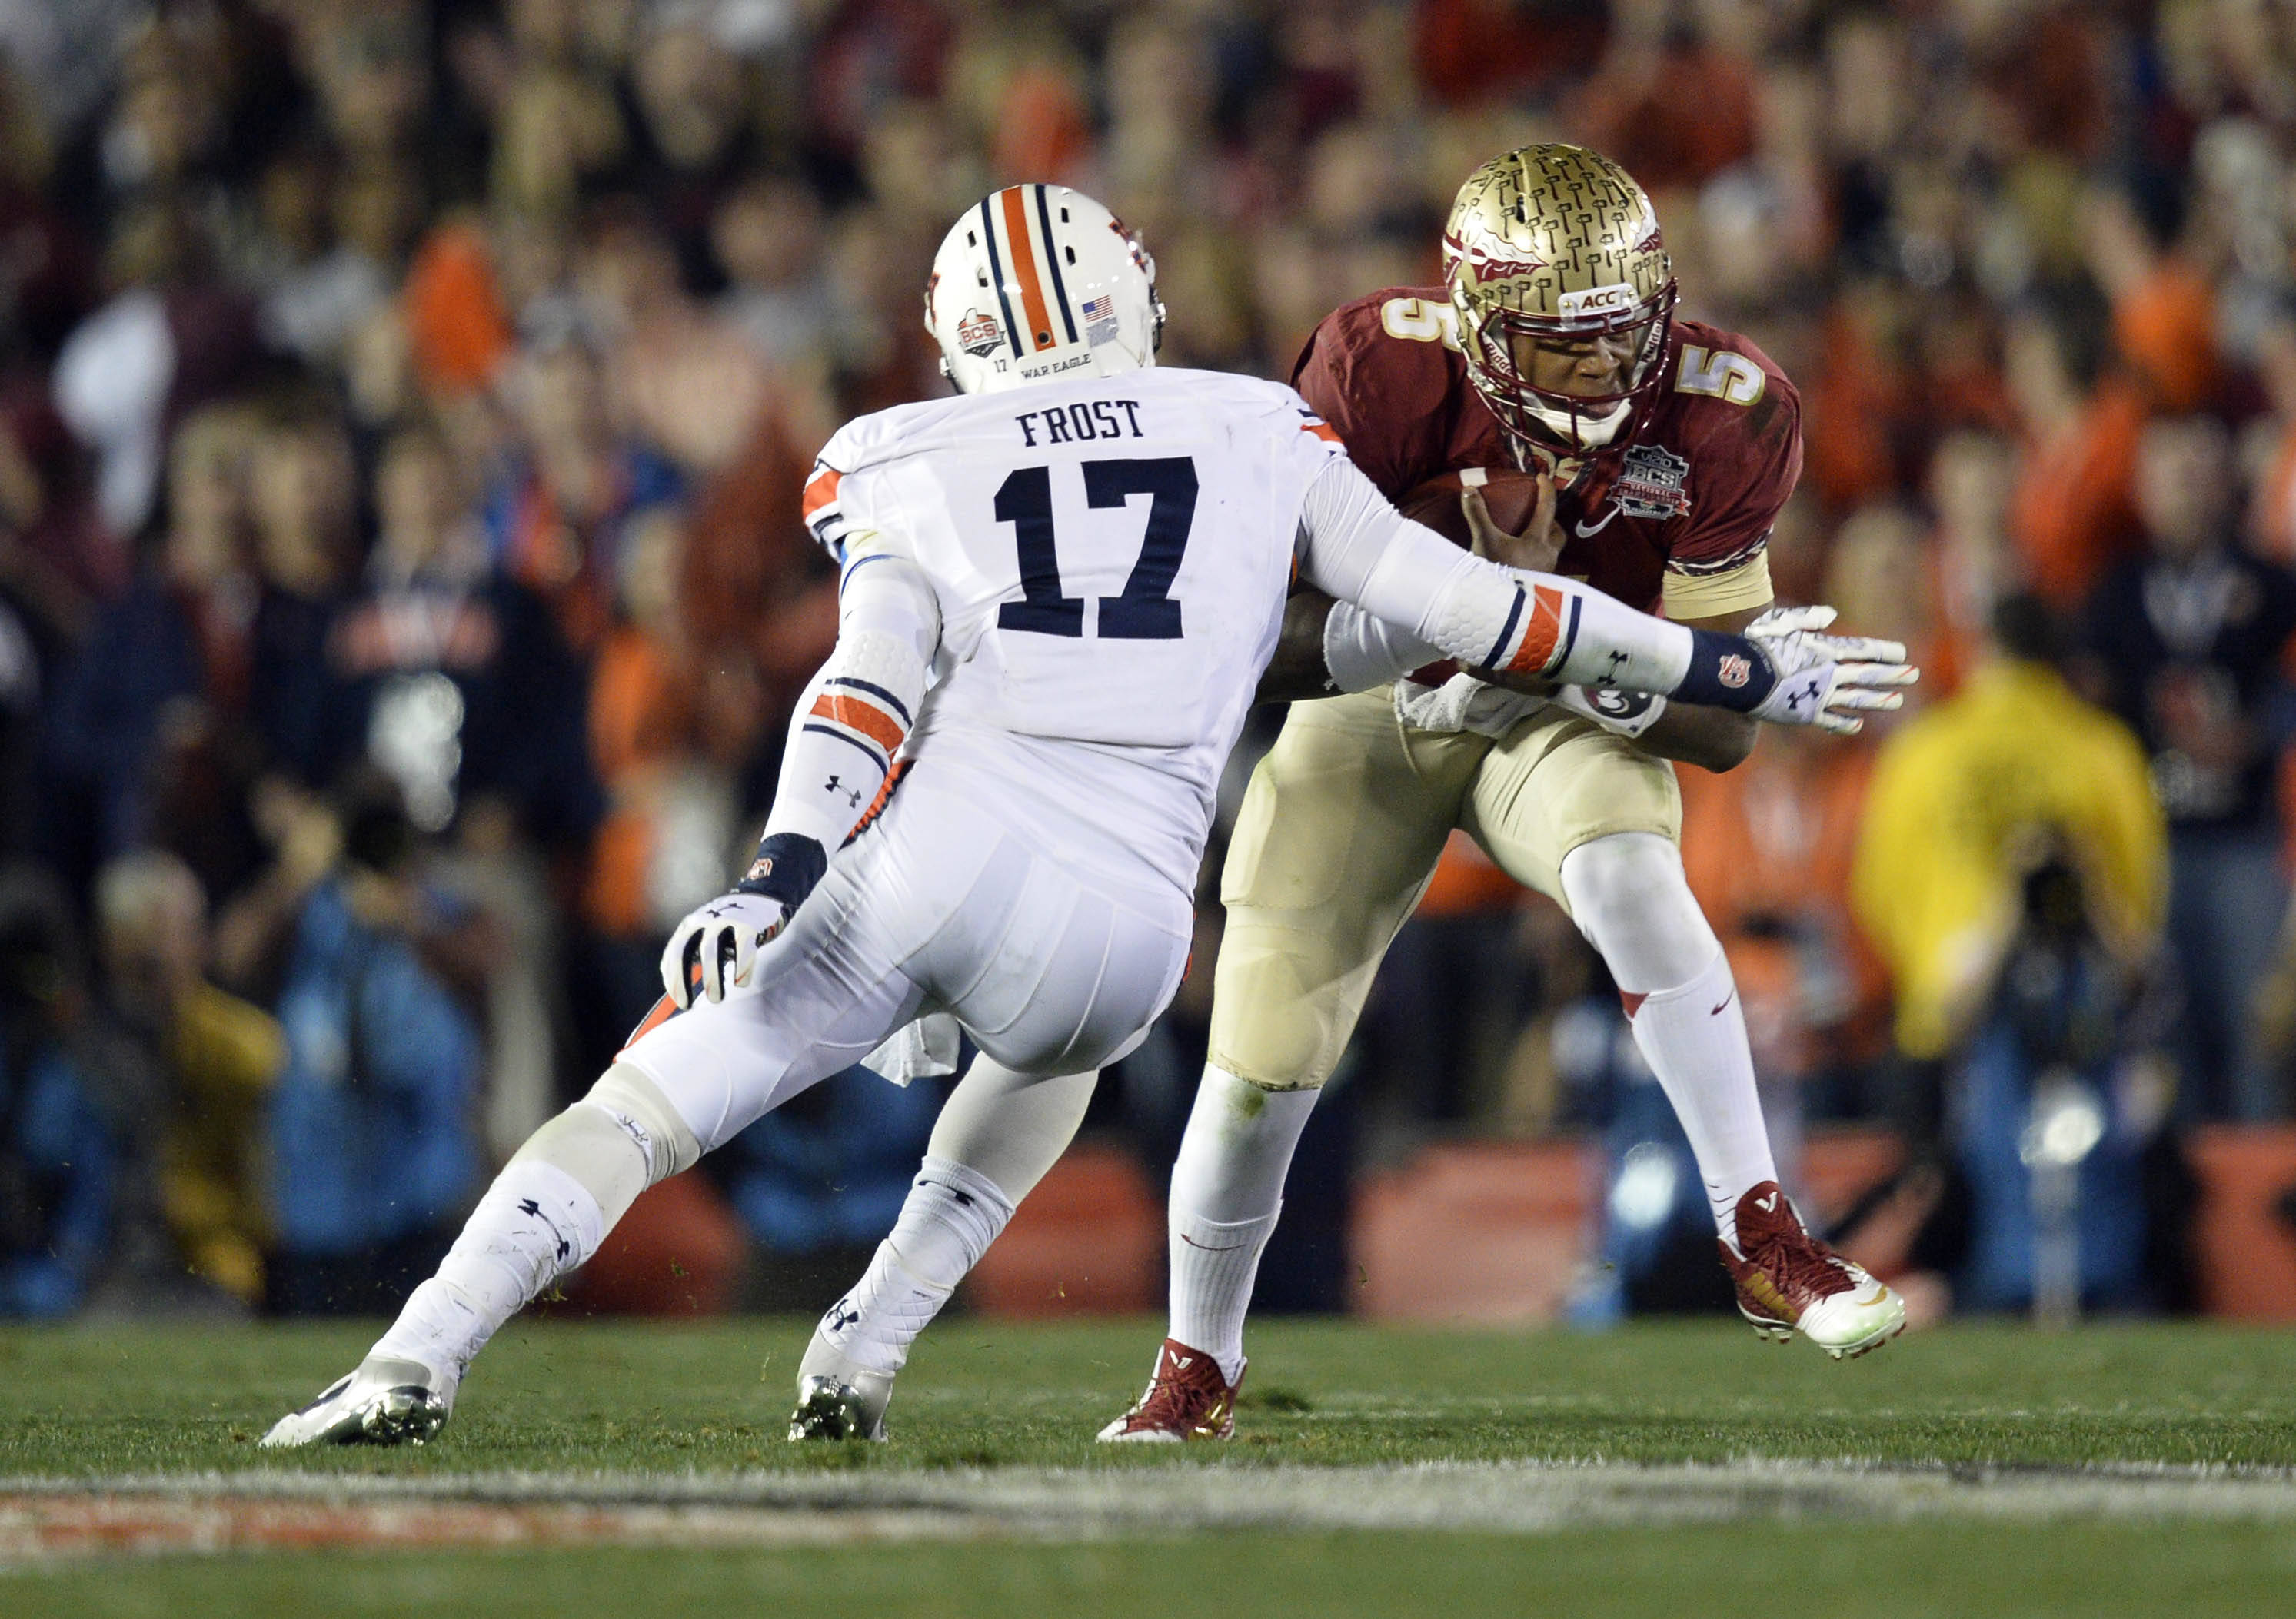 Jan 6, 2014; Pasadena, CA, USA; Florida State Seminoles quarterback Jameis Winston (5) runs against Auburn Tigers linebacker Kris Frost (17) during the first half of the 2014 BCS National Championship game at the Rose Bowl.  Mandatory Credit: Robert Hanashiro-USA TODAY Sports